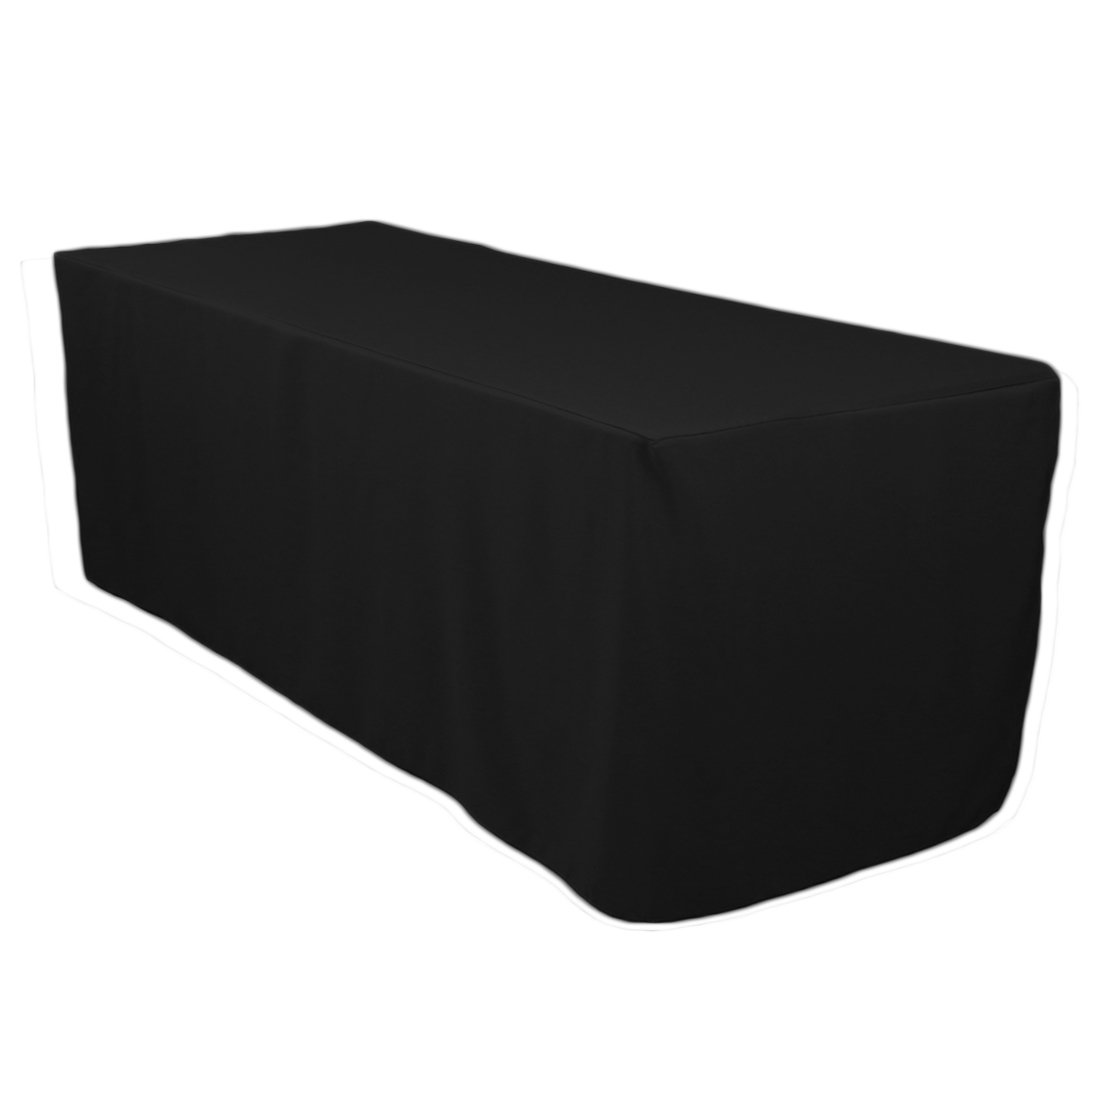 Beau Fitted Polyester Tablecloth Black: Home U0026 Kitchen